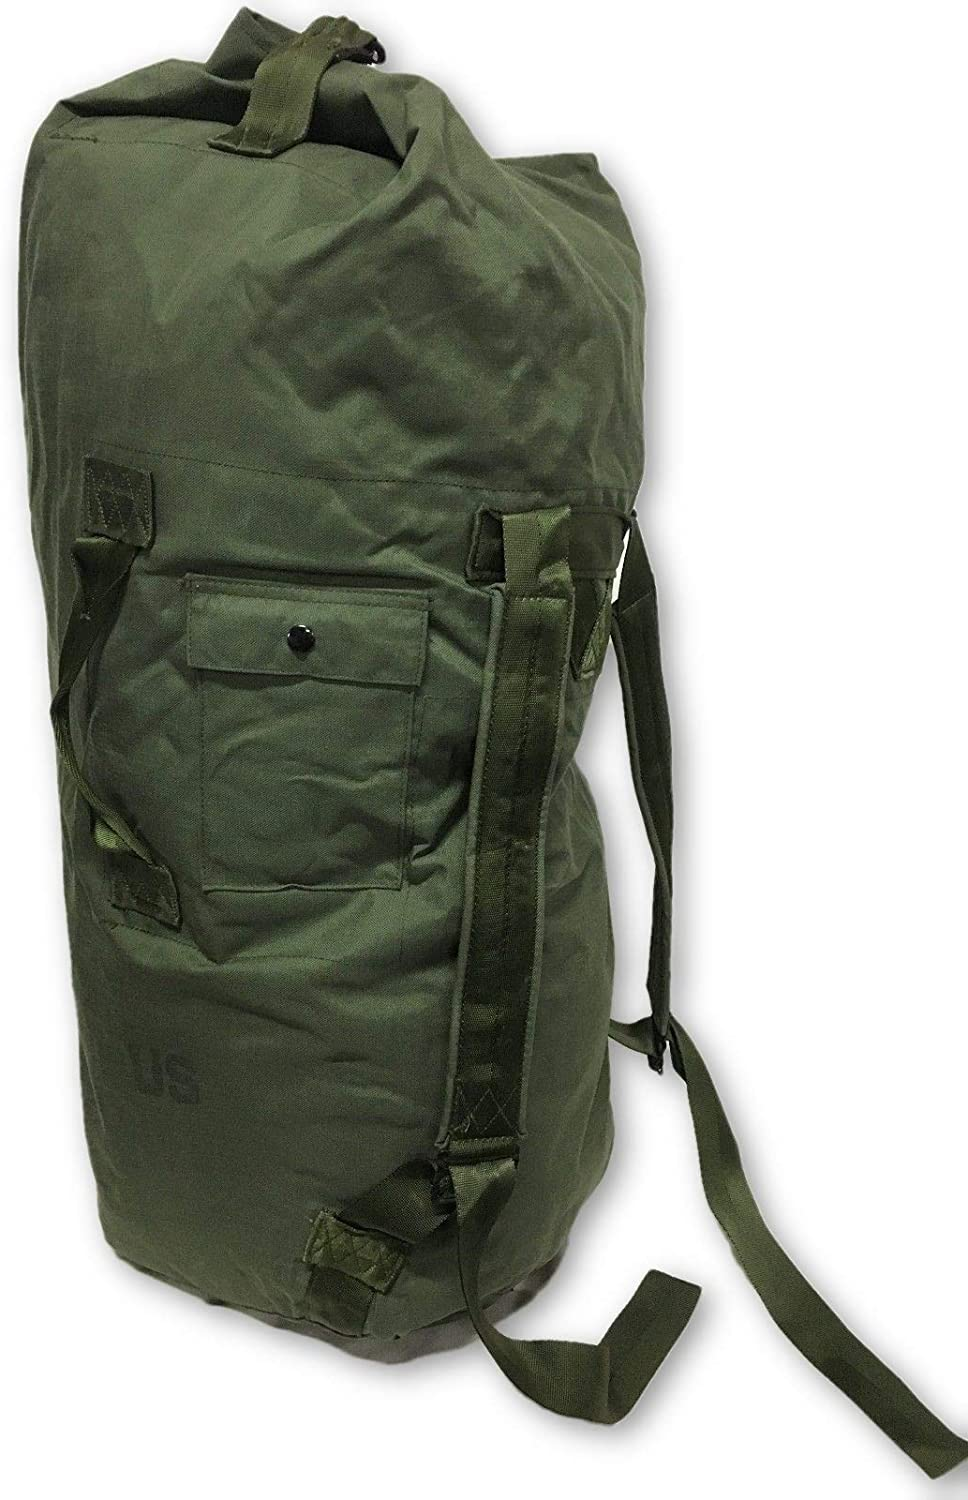 NEW USA Made Army Military Duffle Bag Sea Bag OD Green Top Load Shoulder Straps